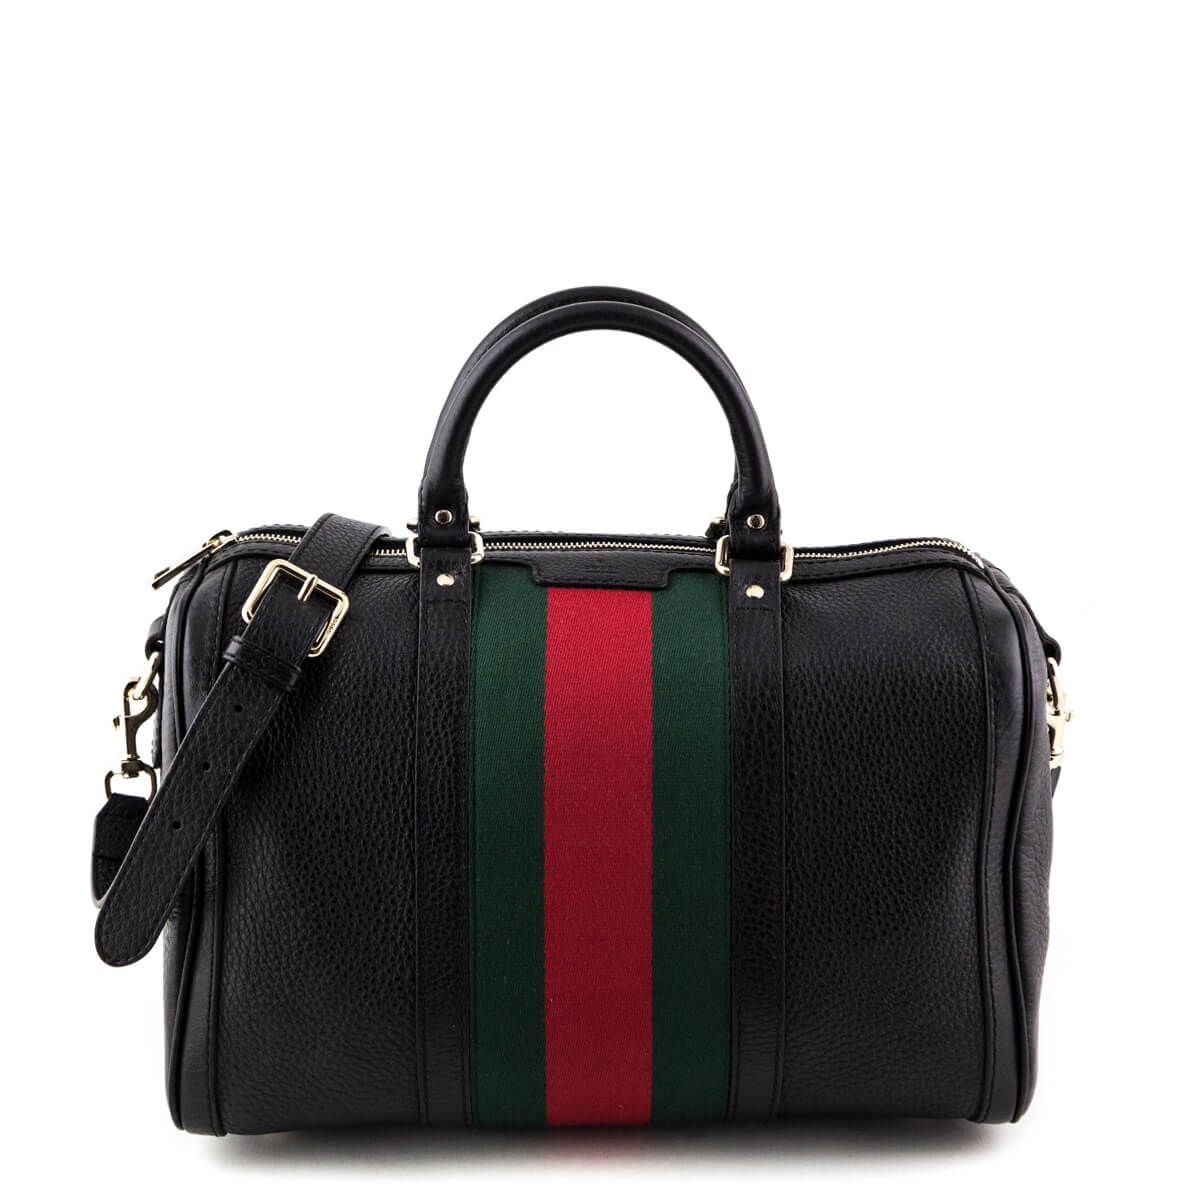 003b789ed277de Gucci Black Web Boston Bag - LOVE that BAG - Preowned Authentic Designer  Handbags ...